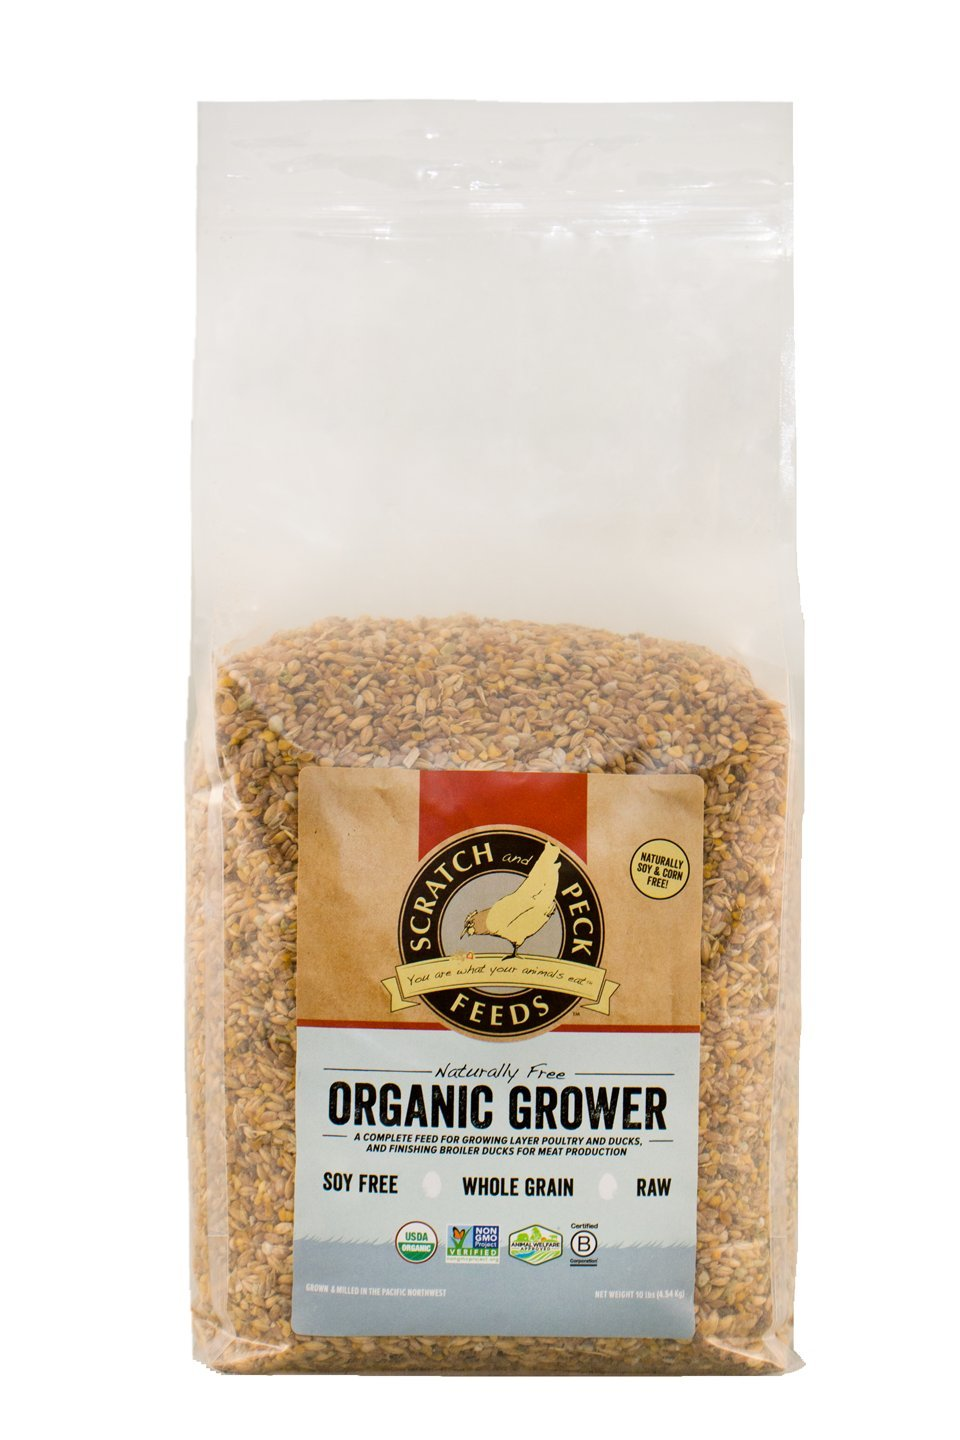 Naturally Free Organic Grower Feed for Chickens and Ducks - 10-lbs - Non-GMO Project Verified, Soy Free and Corn Free - Scratch and Peck Feeds